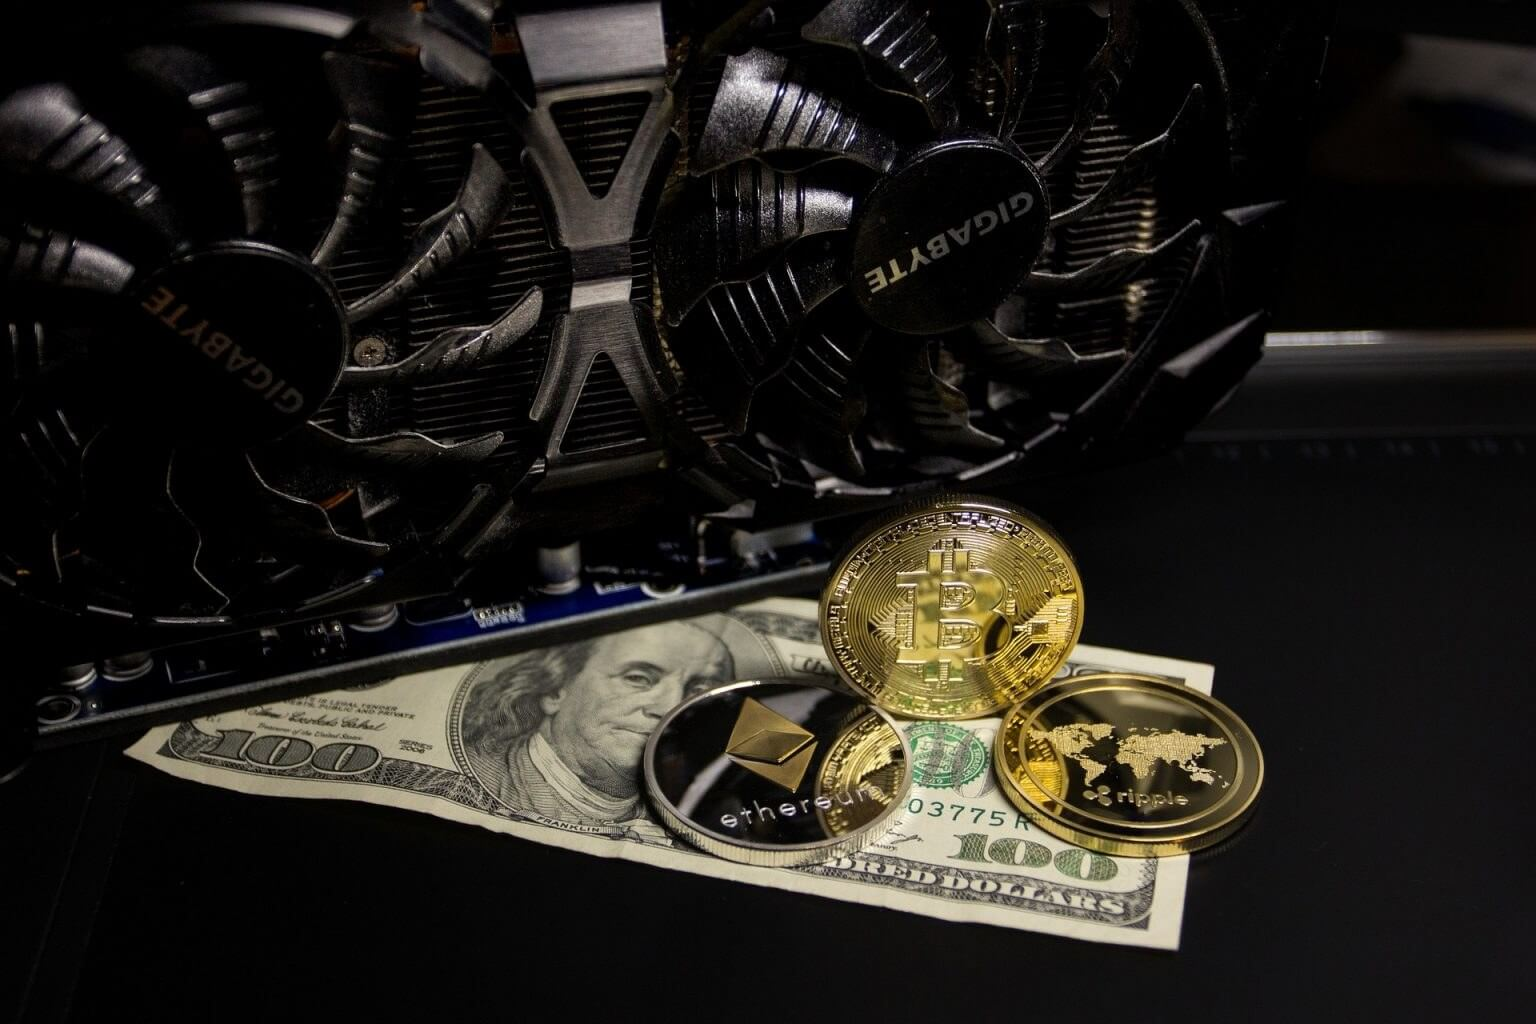 Video card sales fell during Q4 2018 as crypto crash hit hard